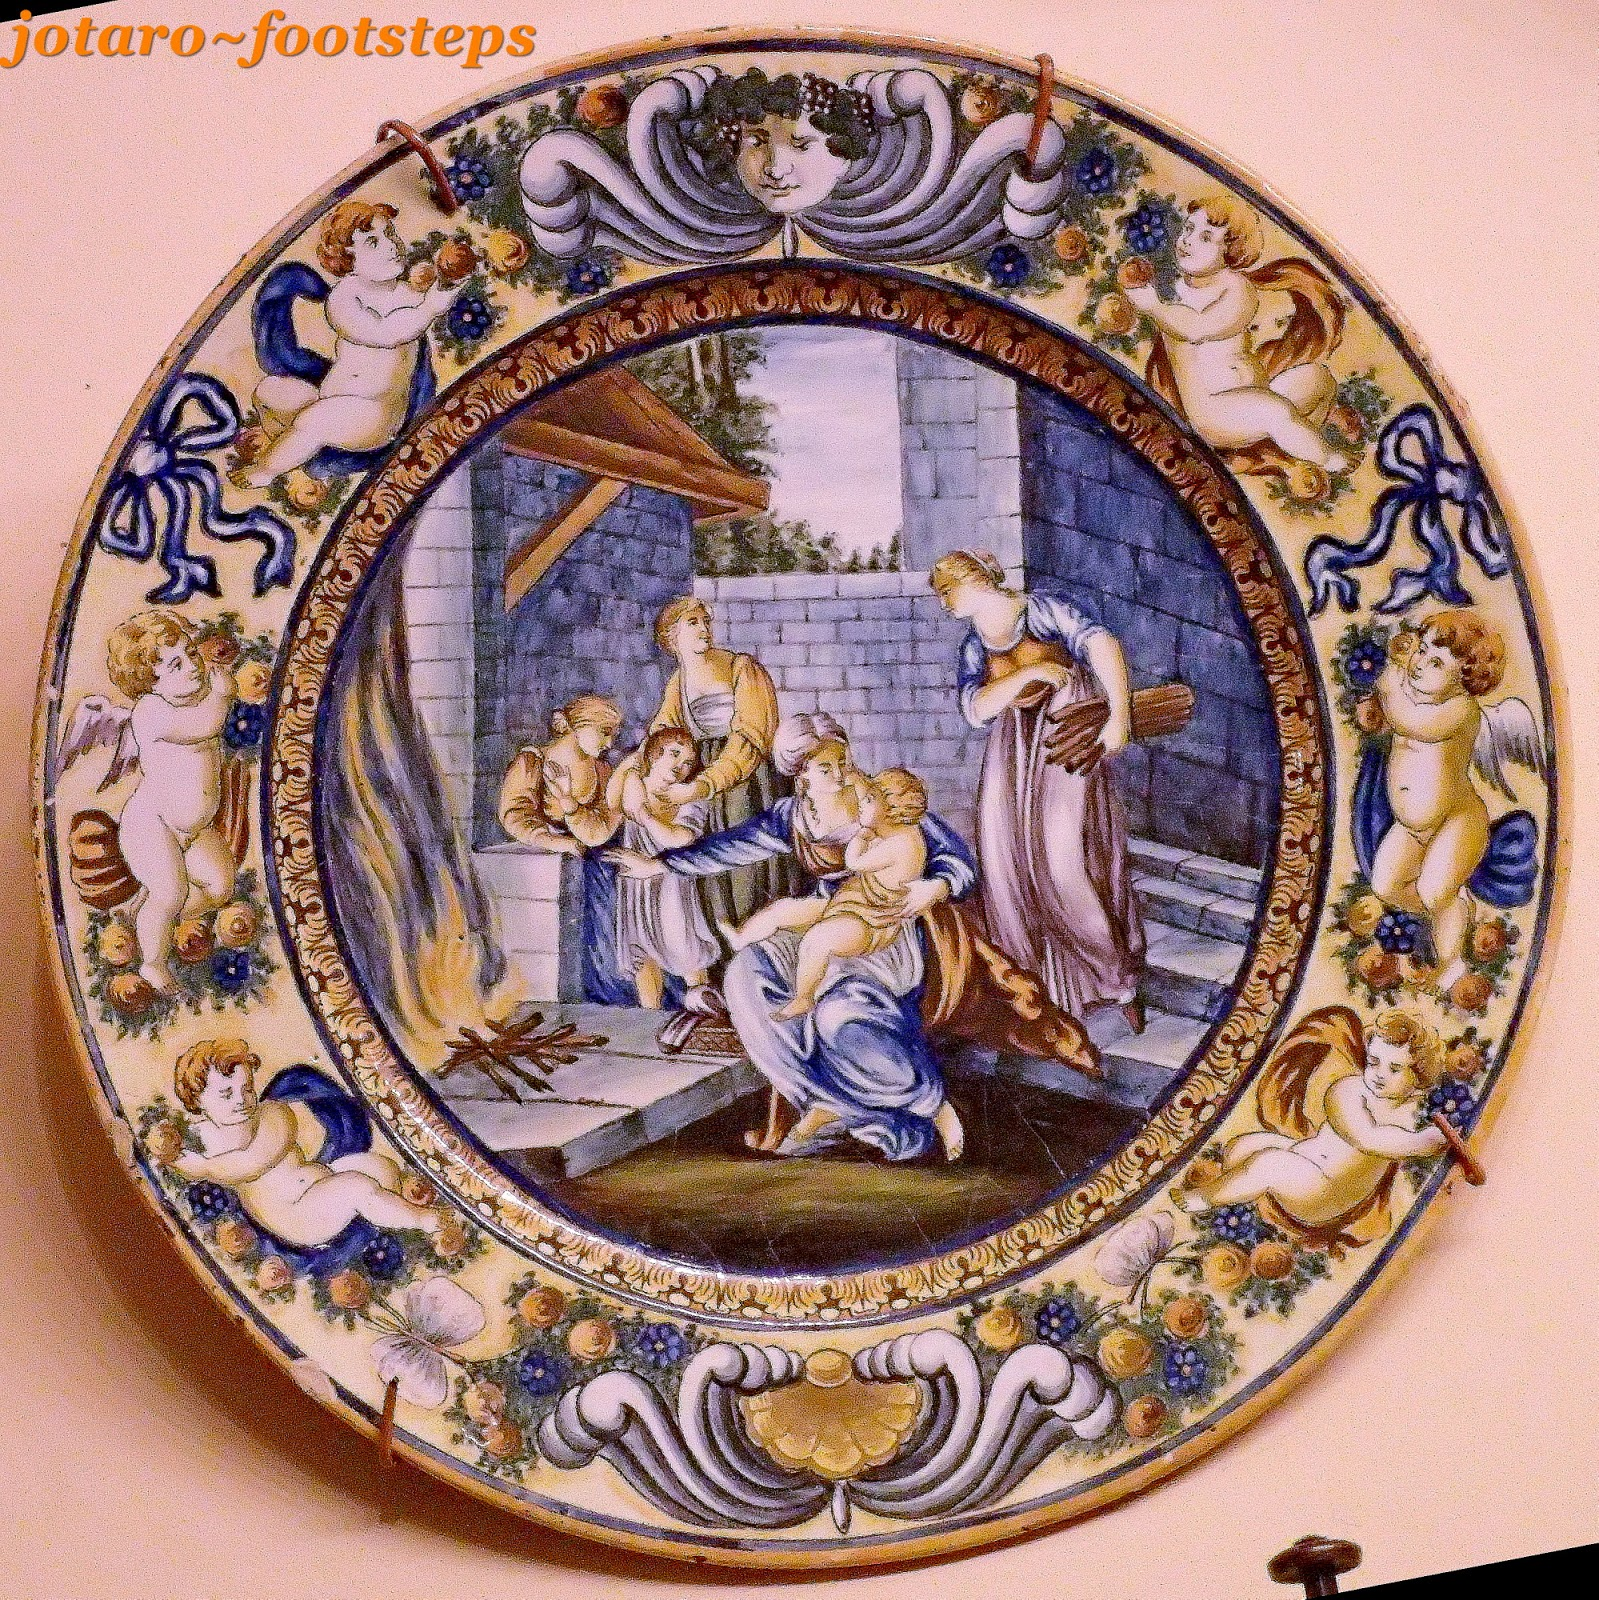 Glazed porcelain plate with scenery of a medieval family ringed by cherubs.